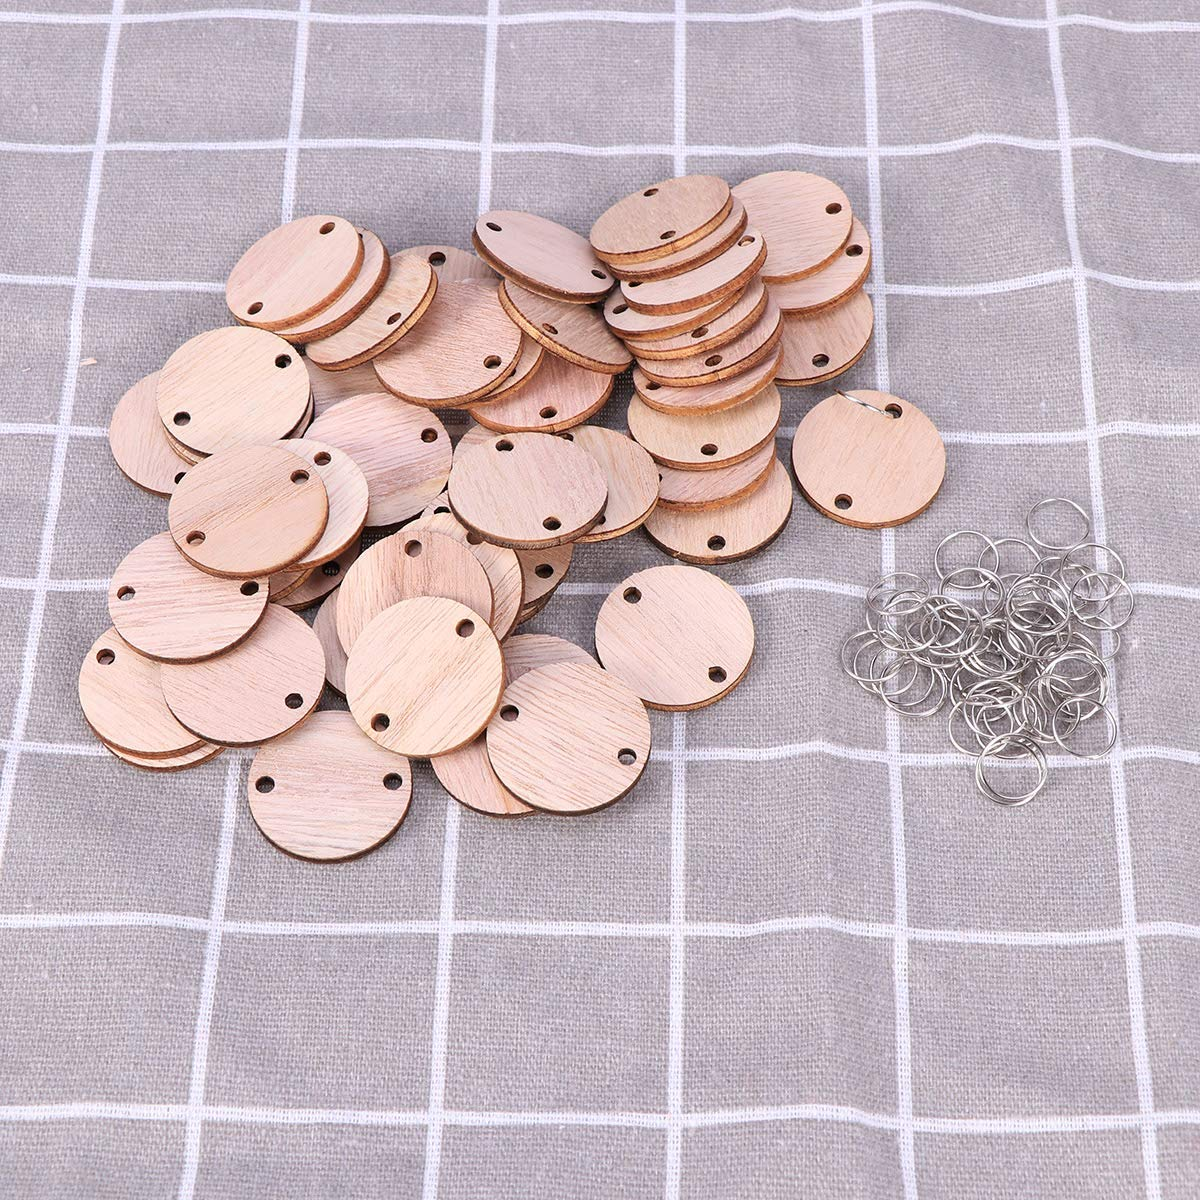 Wood Grain 100pcs Wooden Board Tags Round Wooden Discs Wooden Circles with Holes and 100 Iron Loops Rings